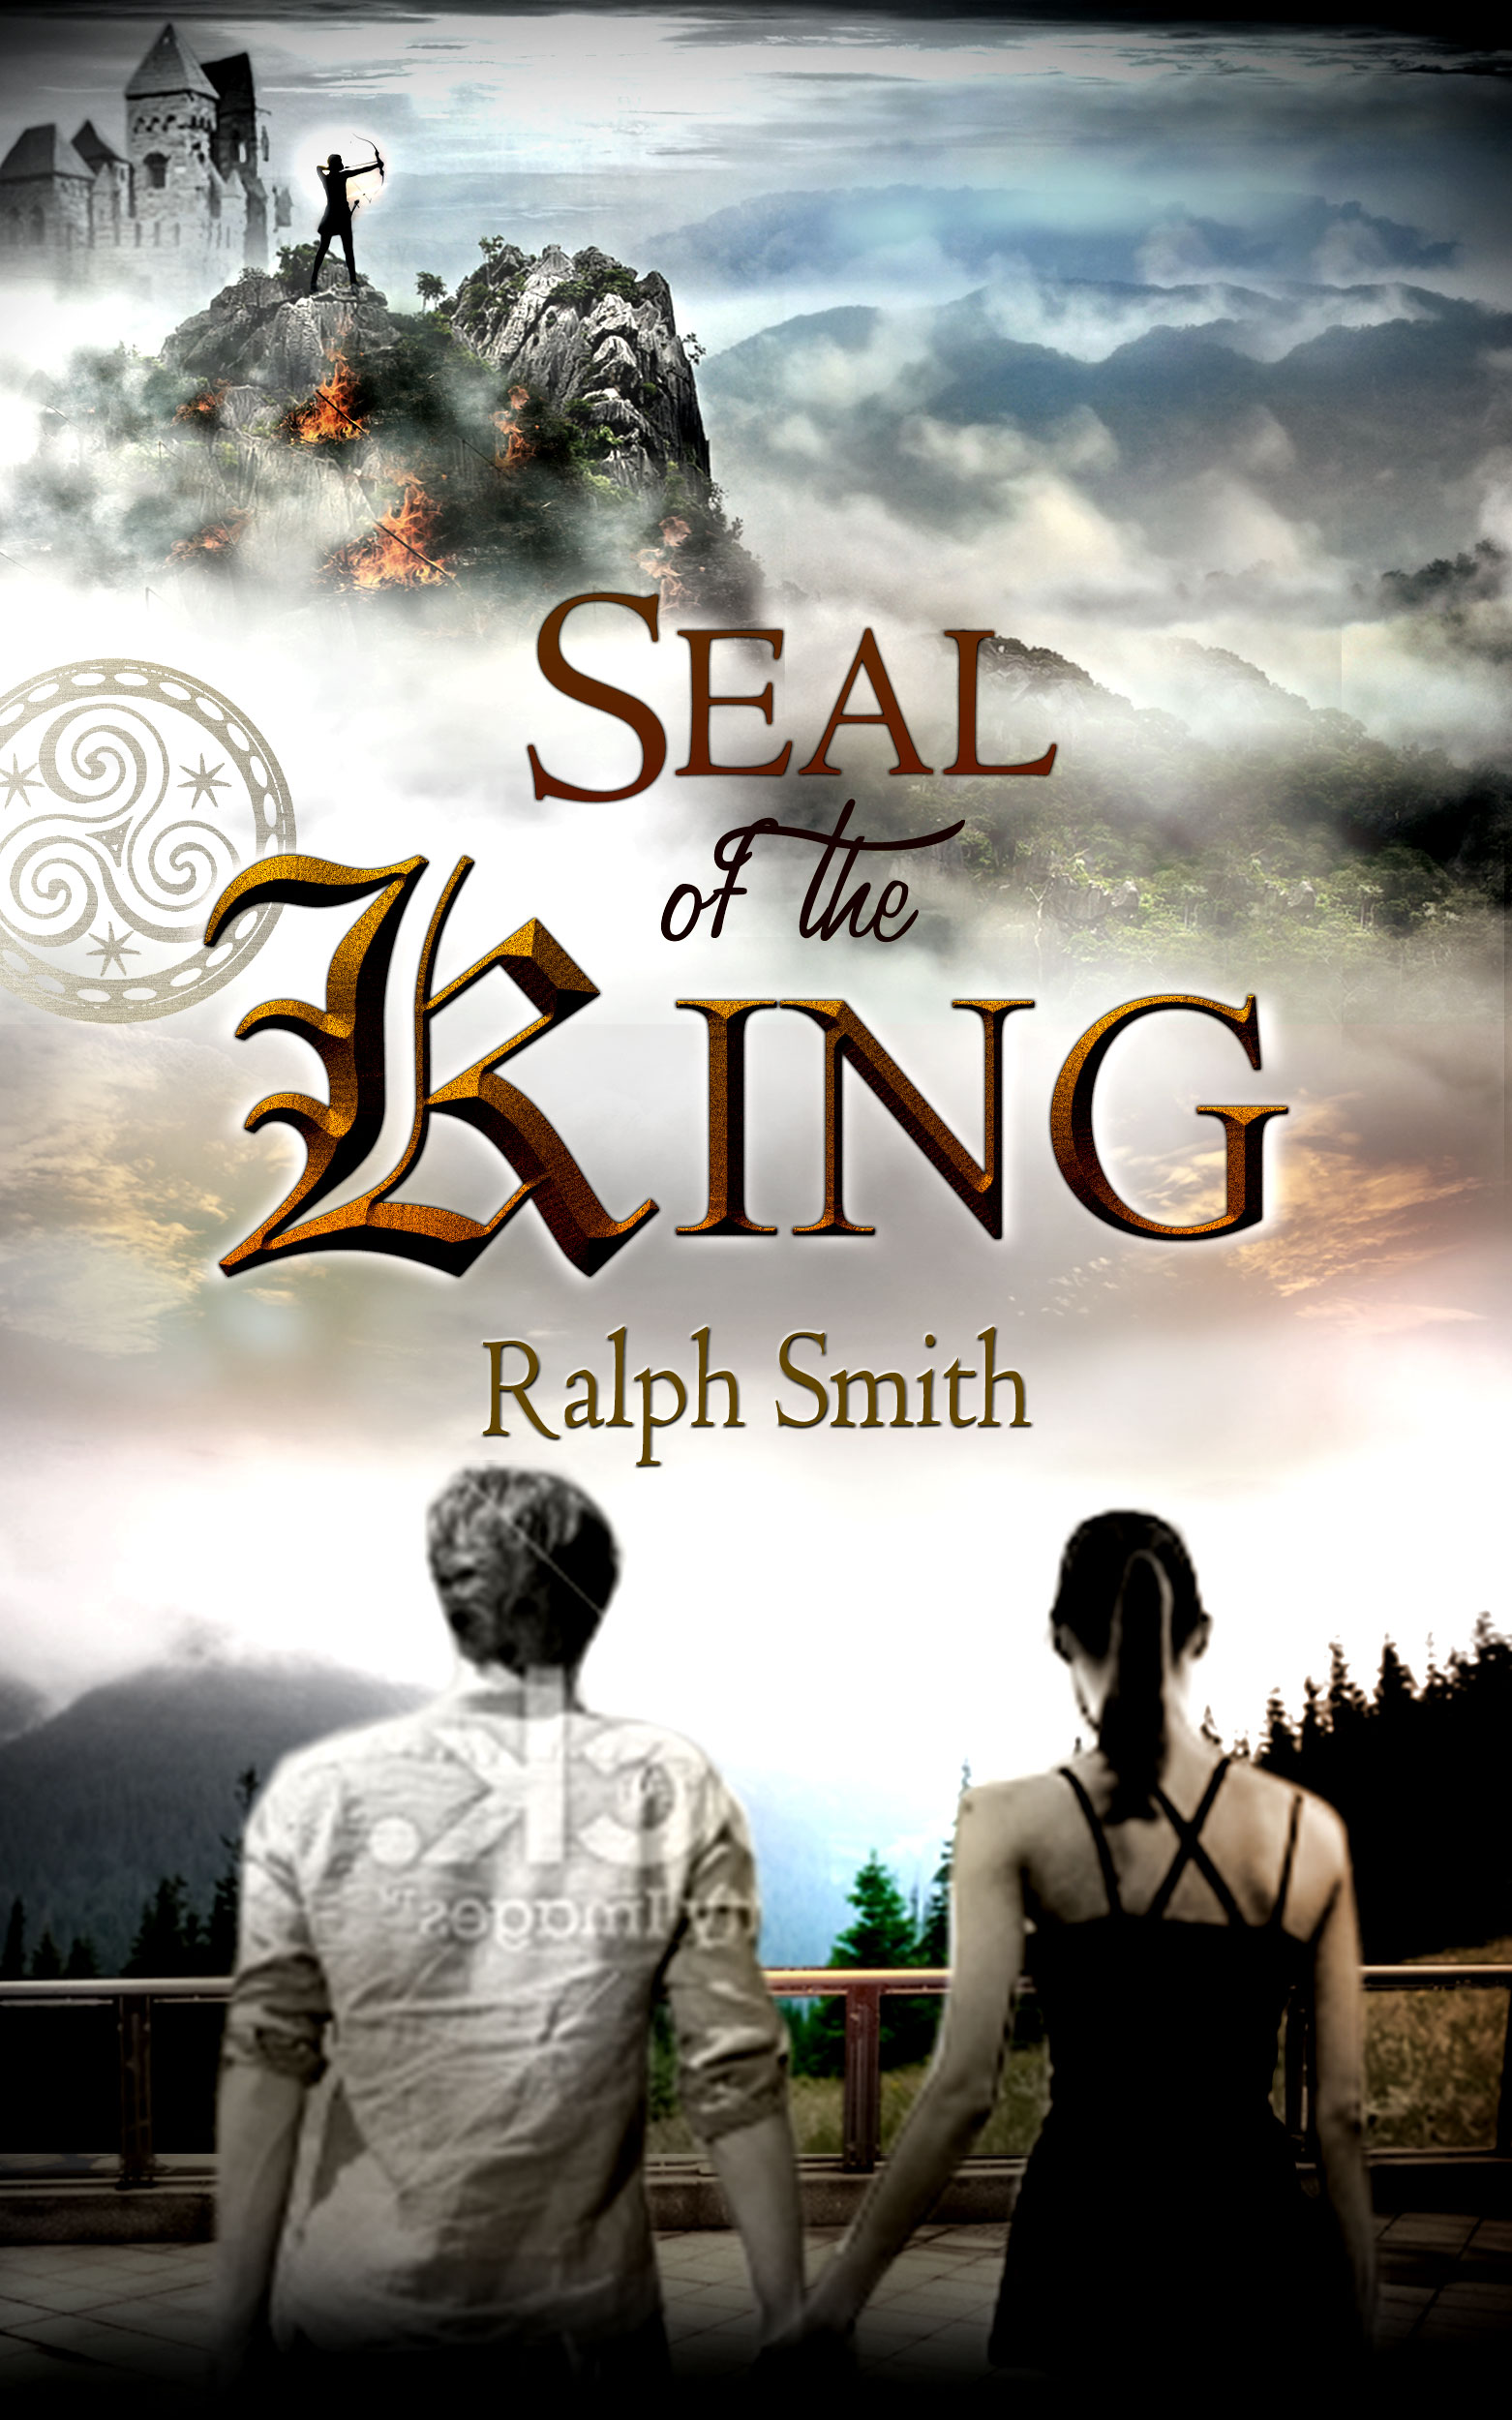 5 of 5 stars Seal of the King is a thrilling adventure that embraces you